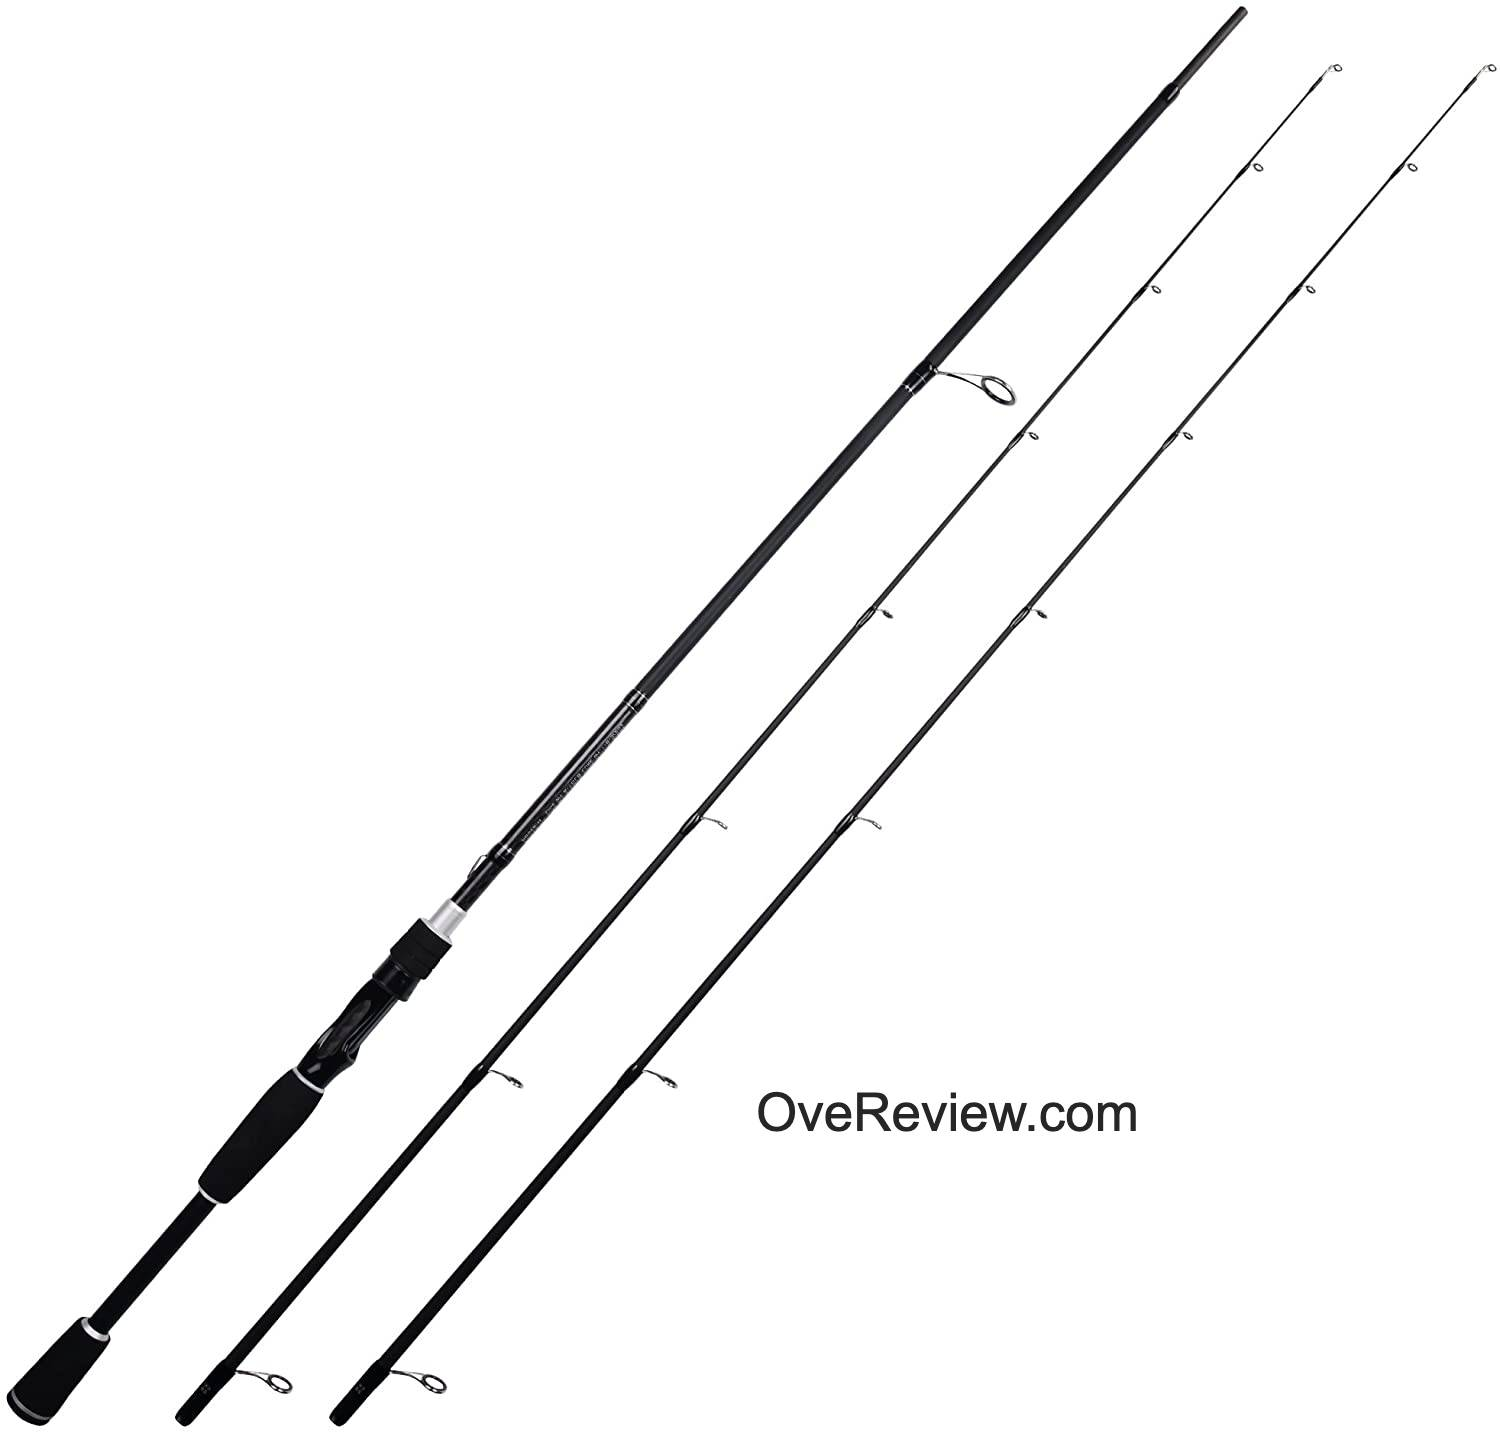 Top 12 Best Fishing Poles of 2021 - {Buyer's Guide} 8